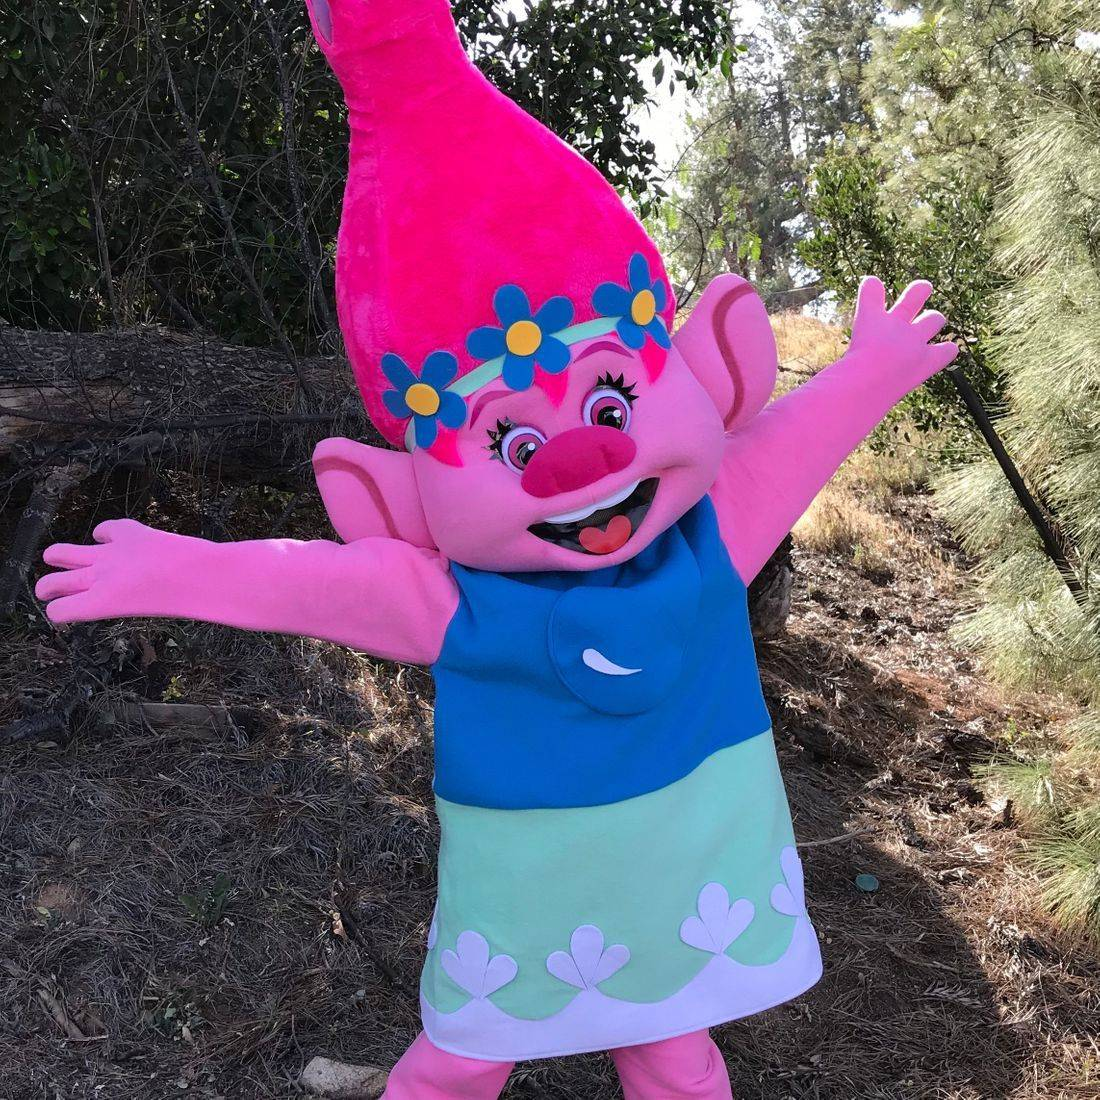 Pink troll character with arms wide open in the forest.